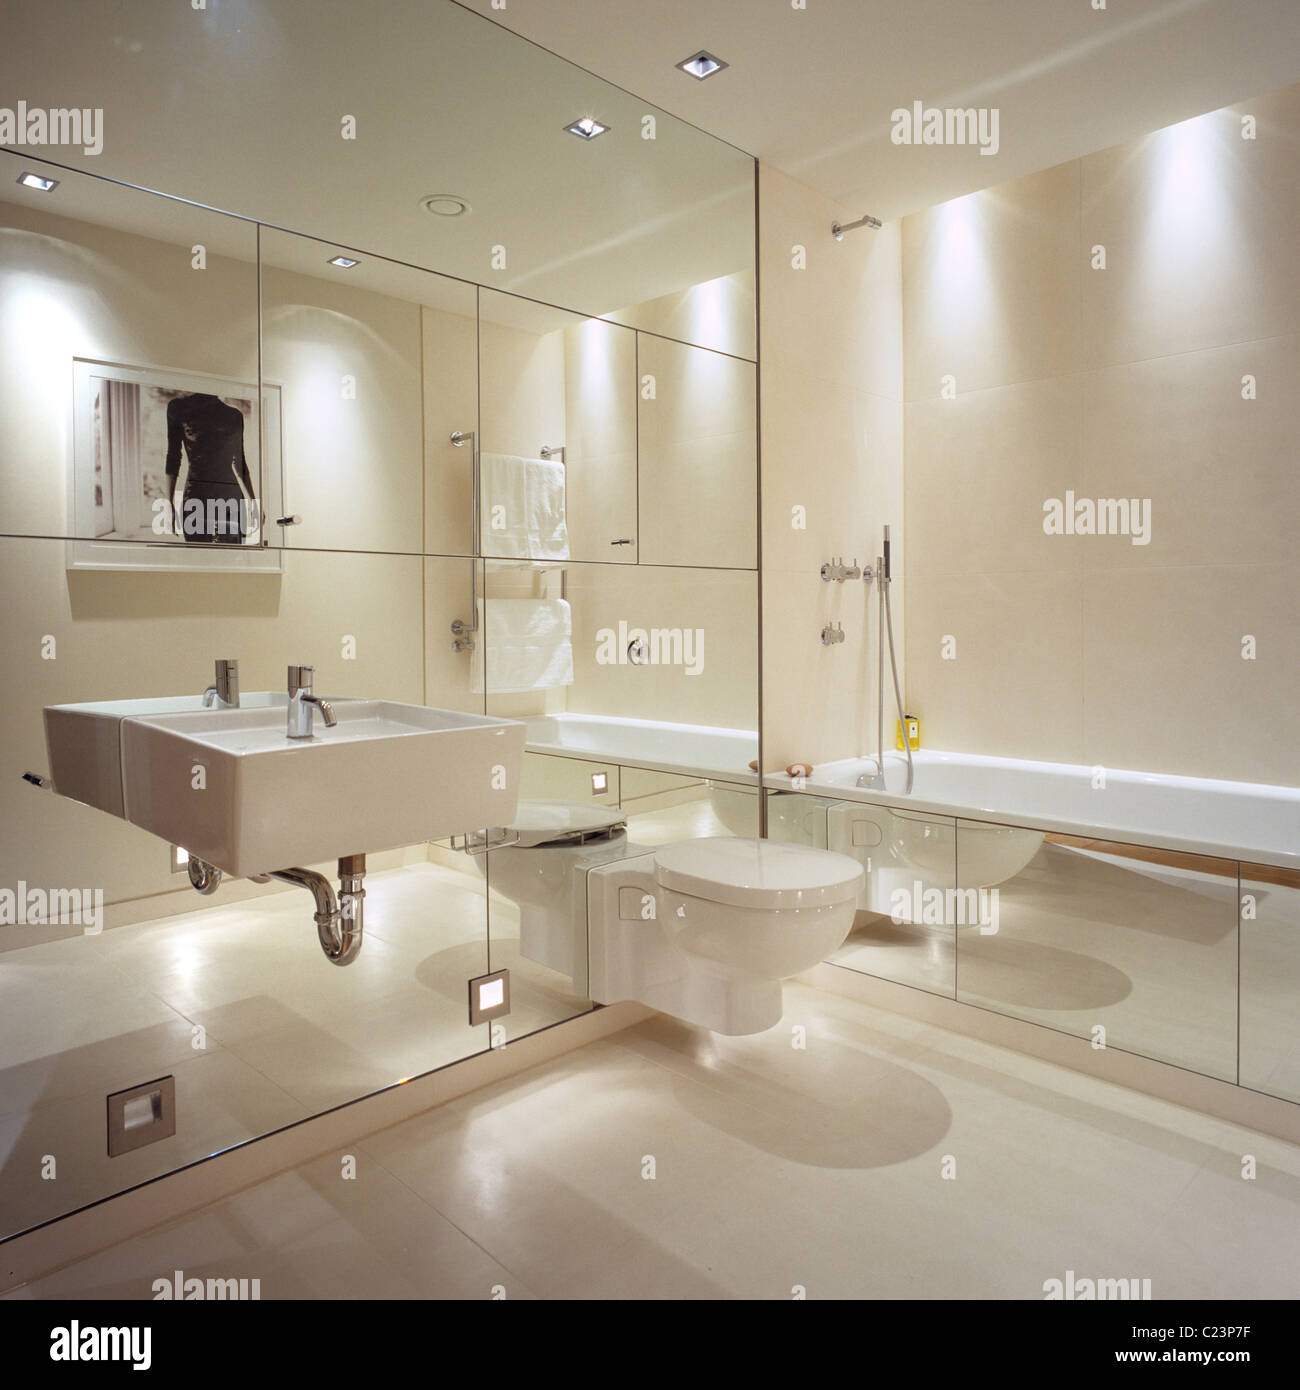 Mirrored Wall In Contemporary Bathroom With Interior Design By Todhunter  Earle